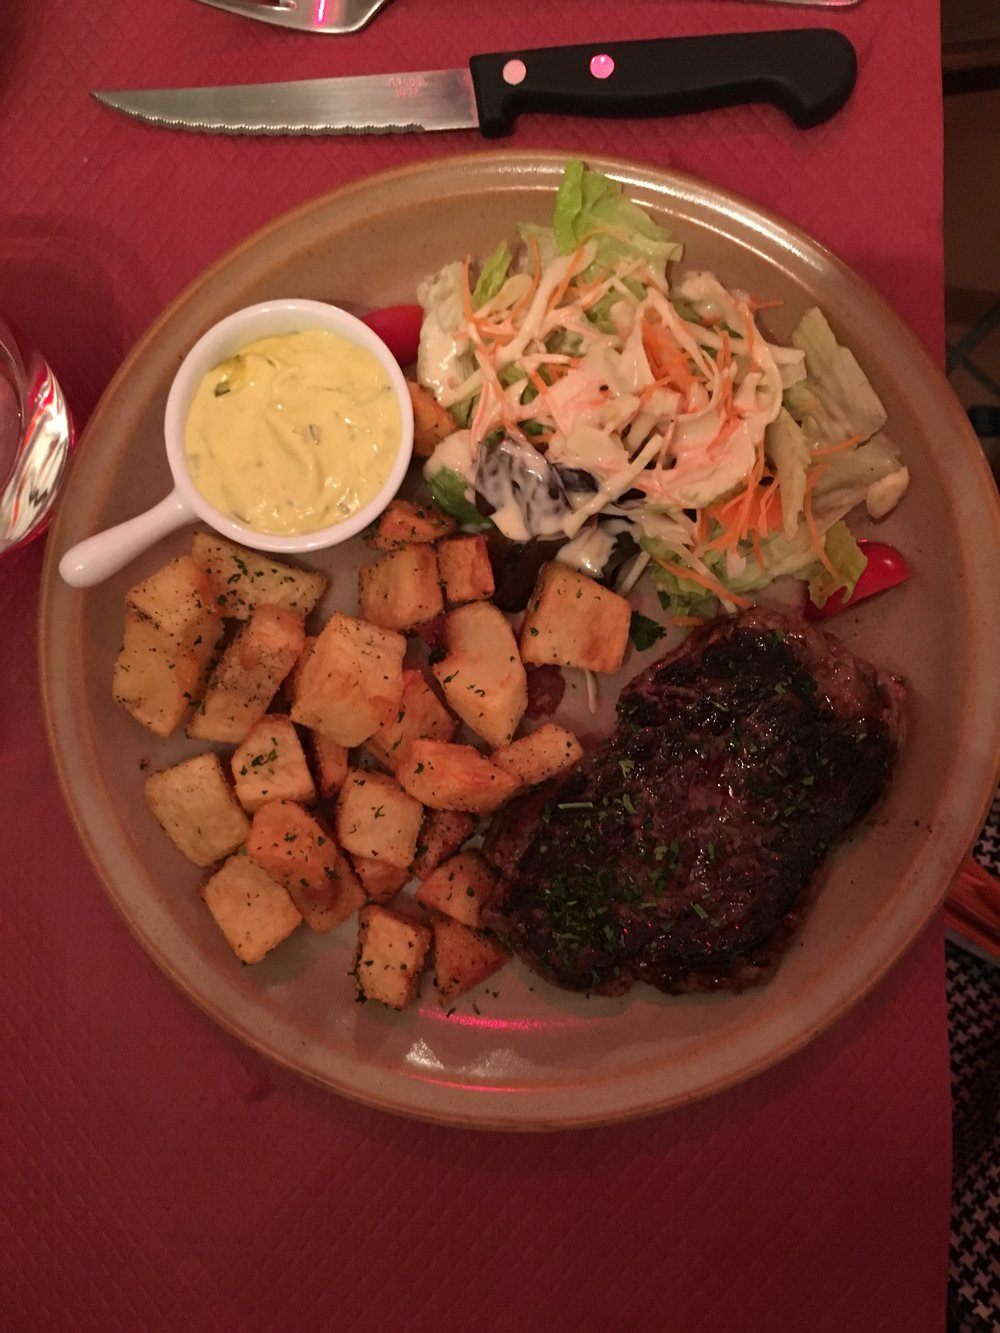 this food was unbelievably good! the steak just melted in your mouth and those potatoes….yum!